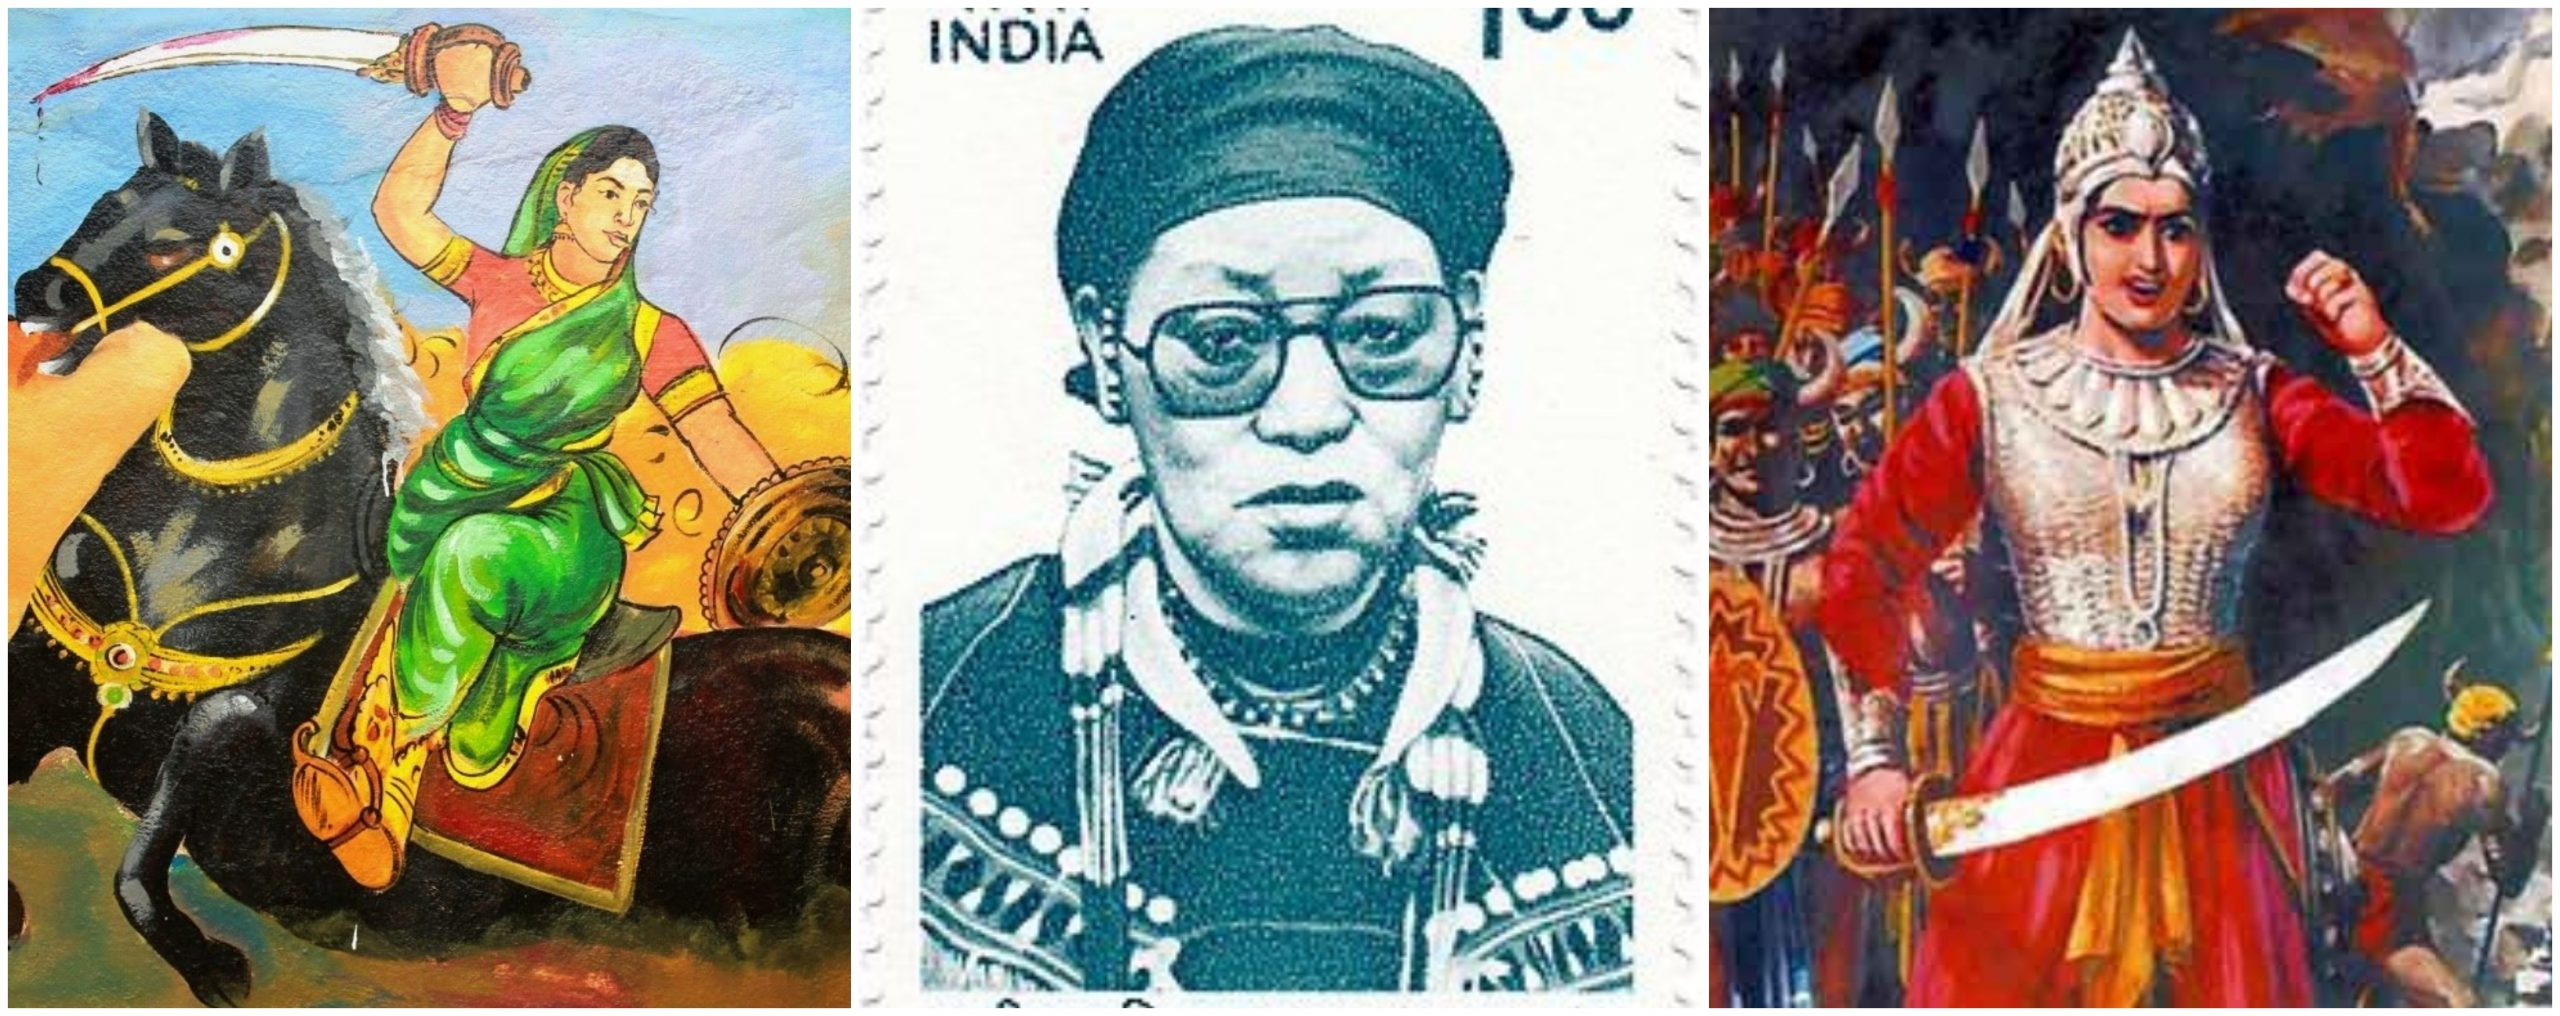 3 Tribal Women Who Helped Make India A Republic